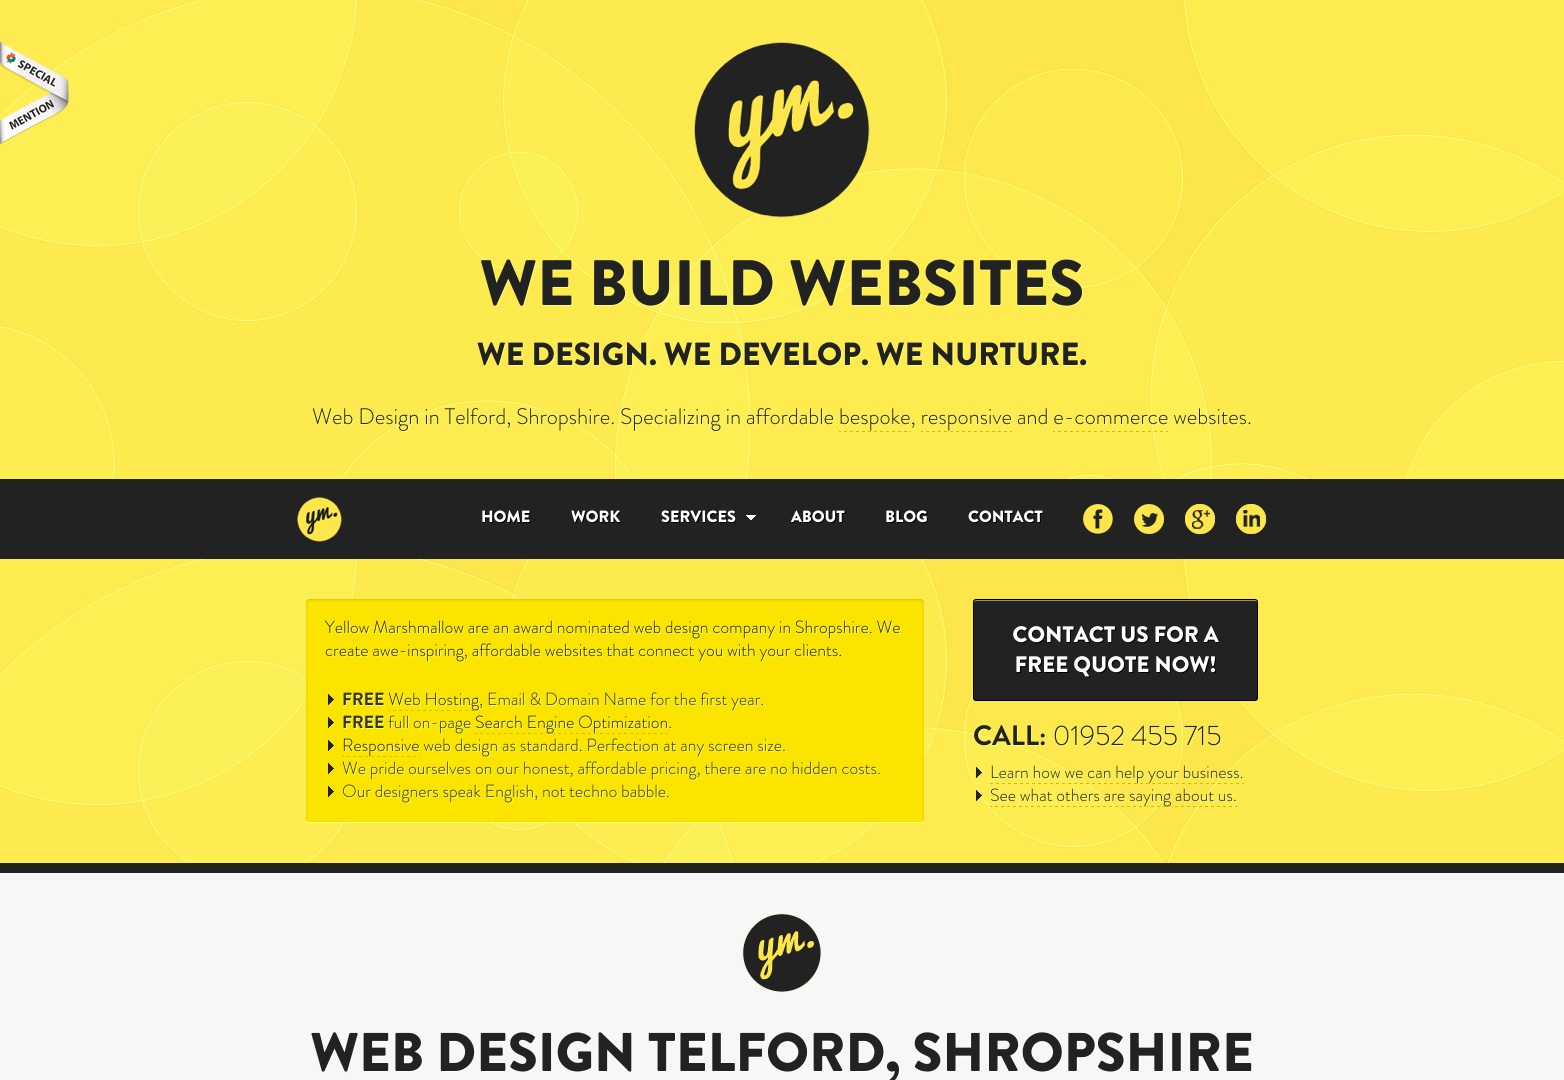 Web Design Telford | Web Design Shropshire | Yellow Marshmallow